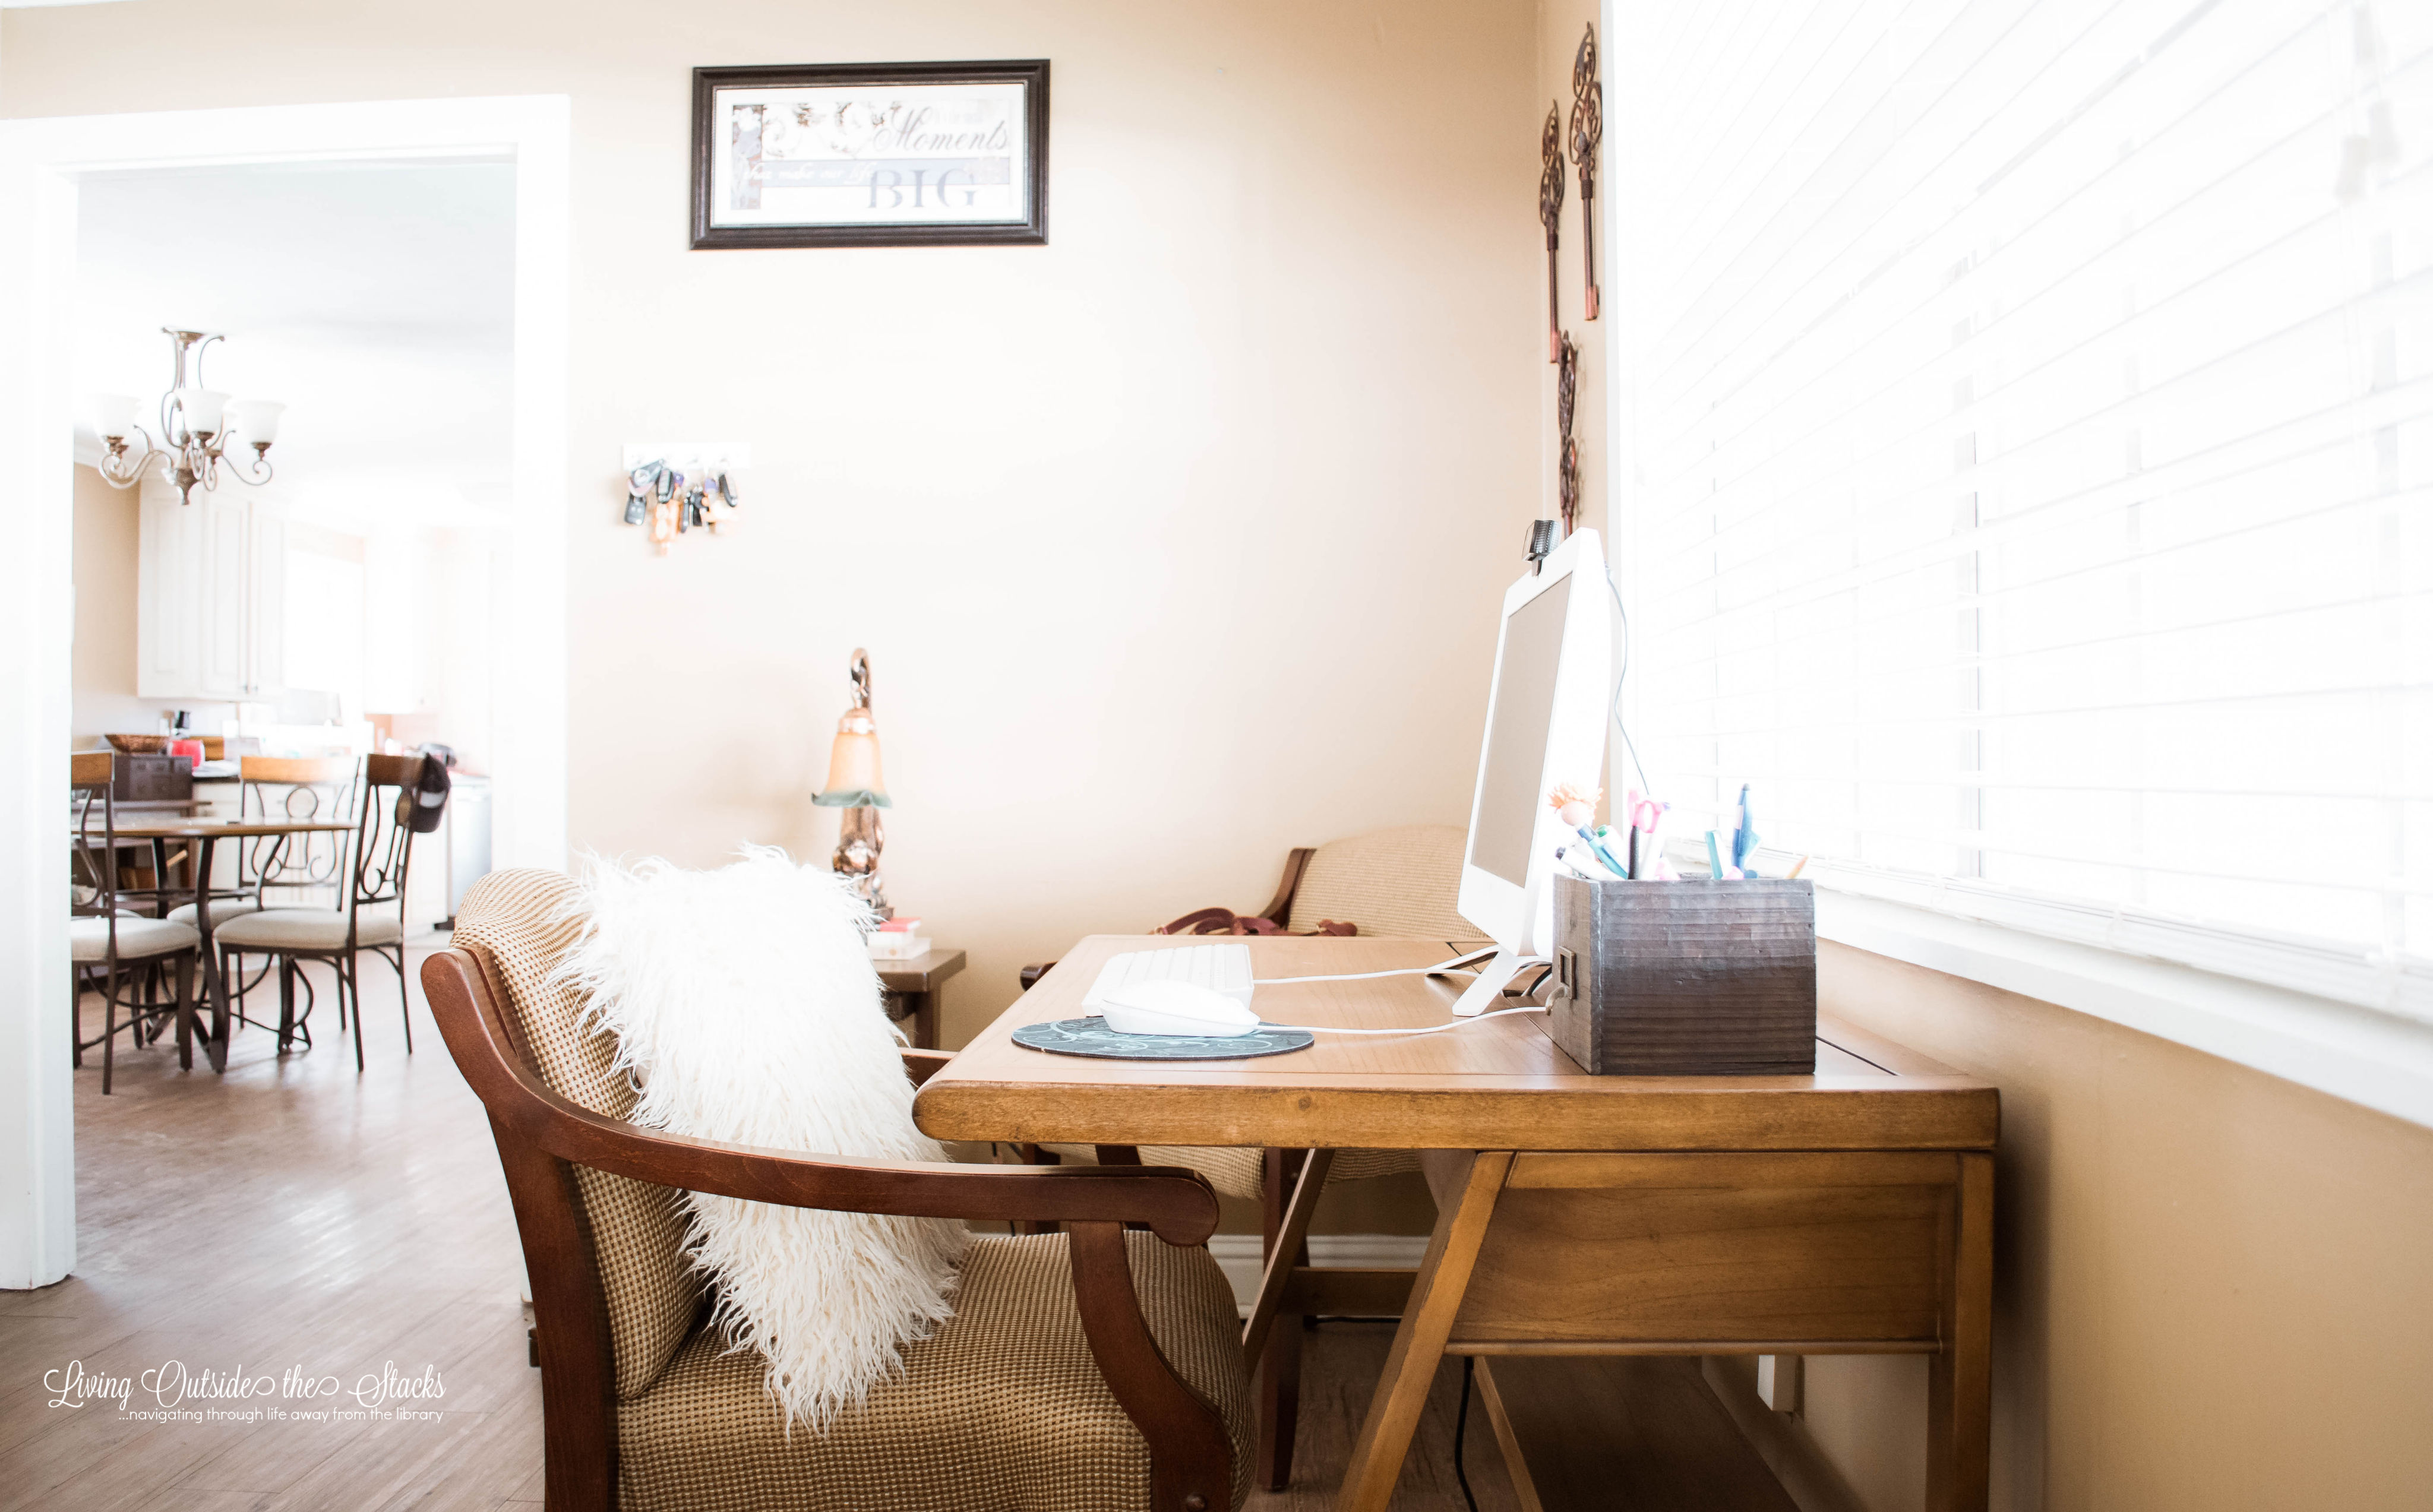 Home Office {living outside the stacks}